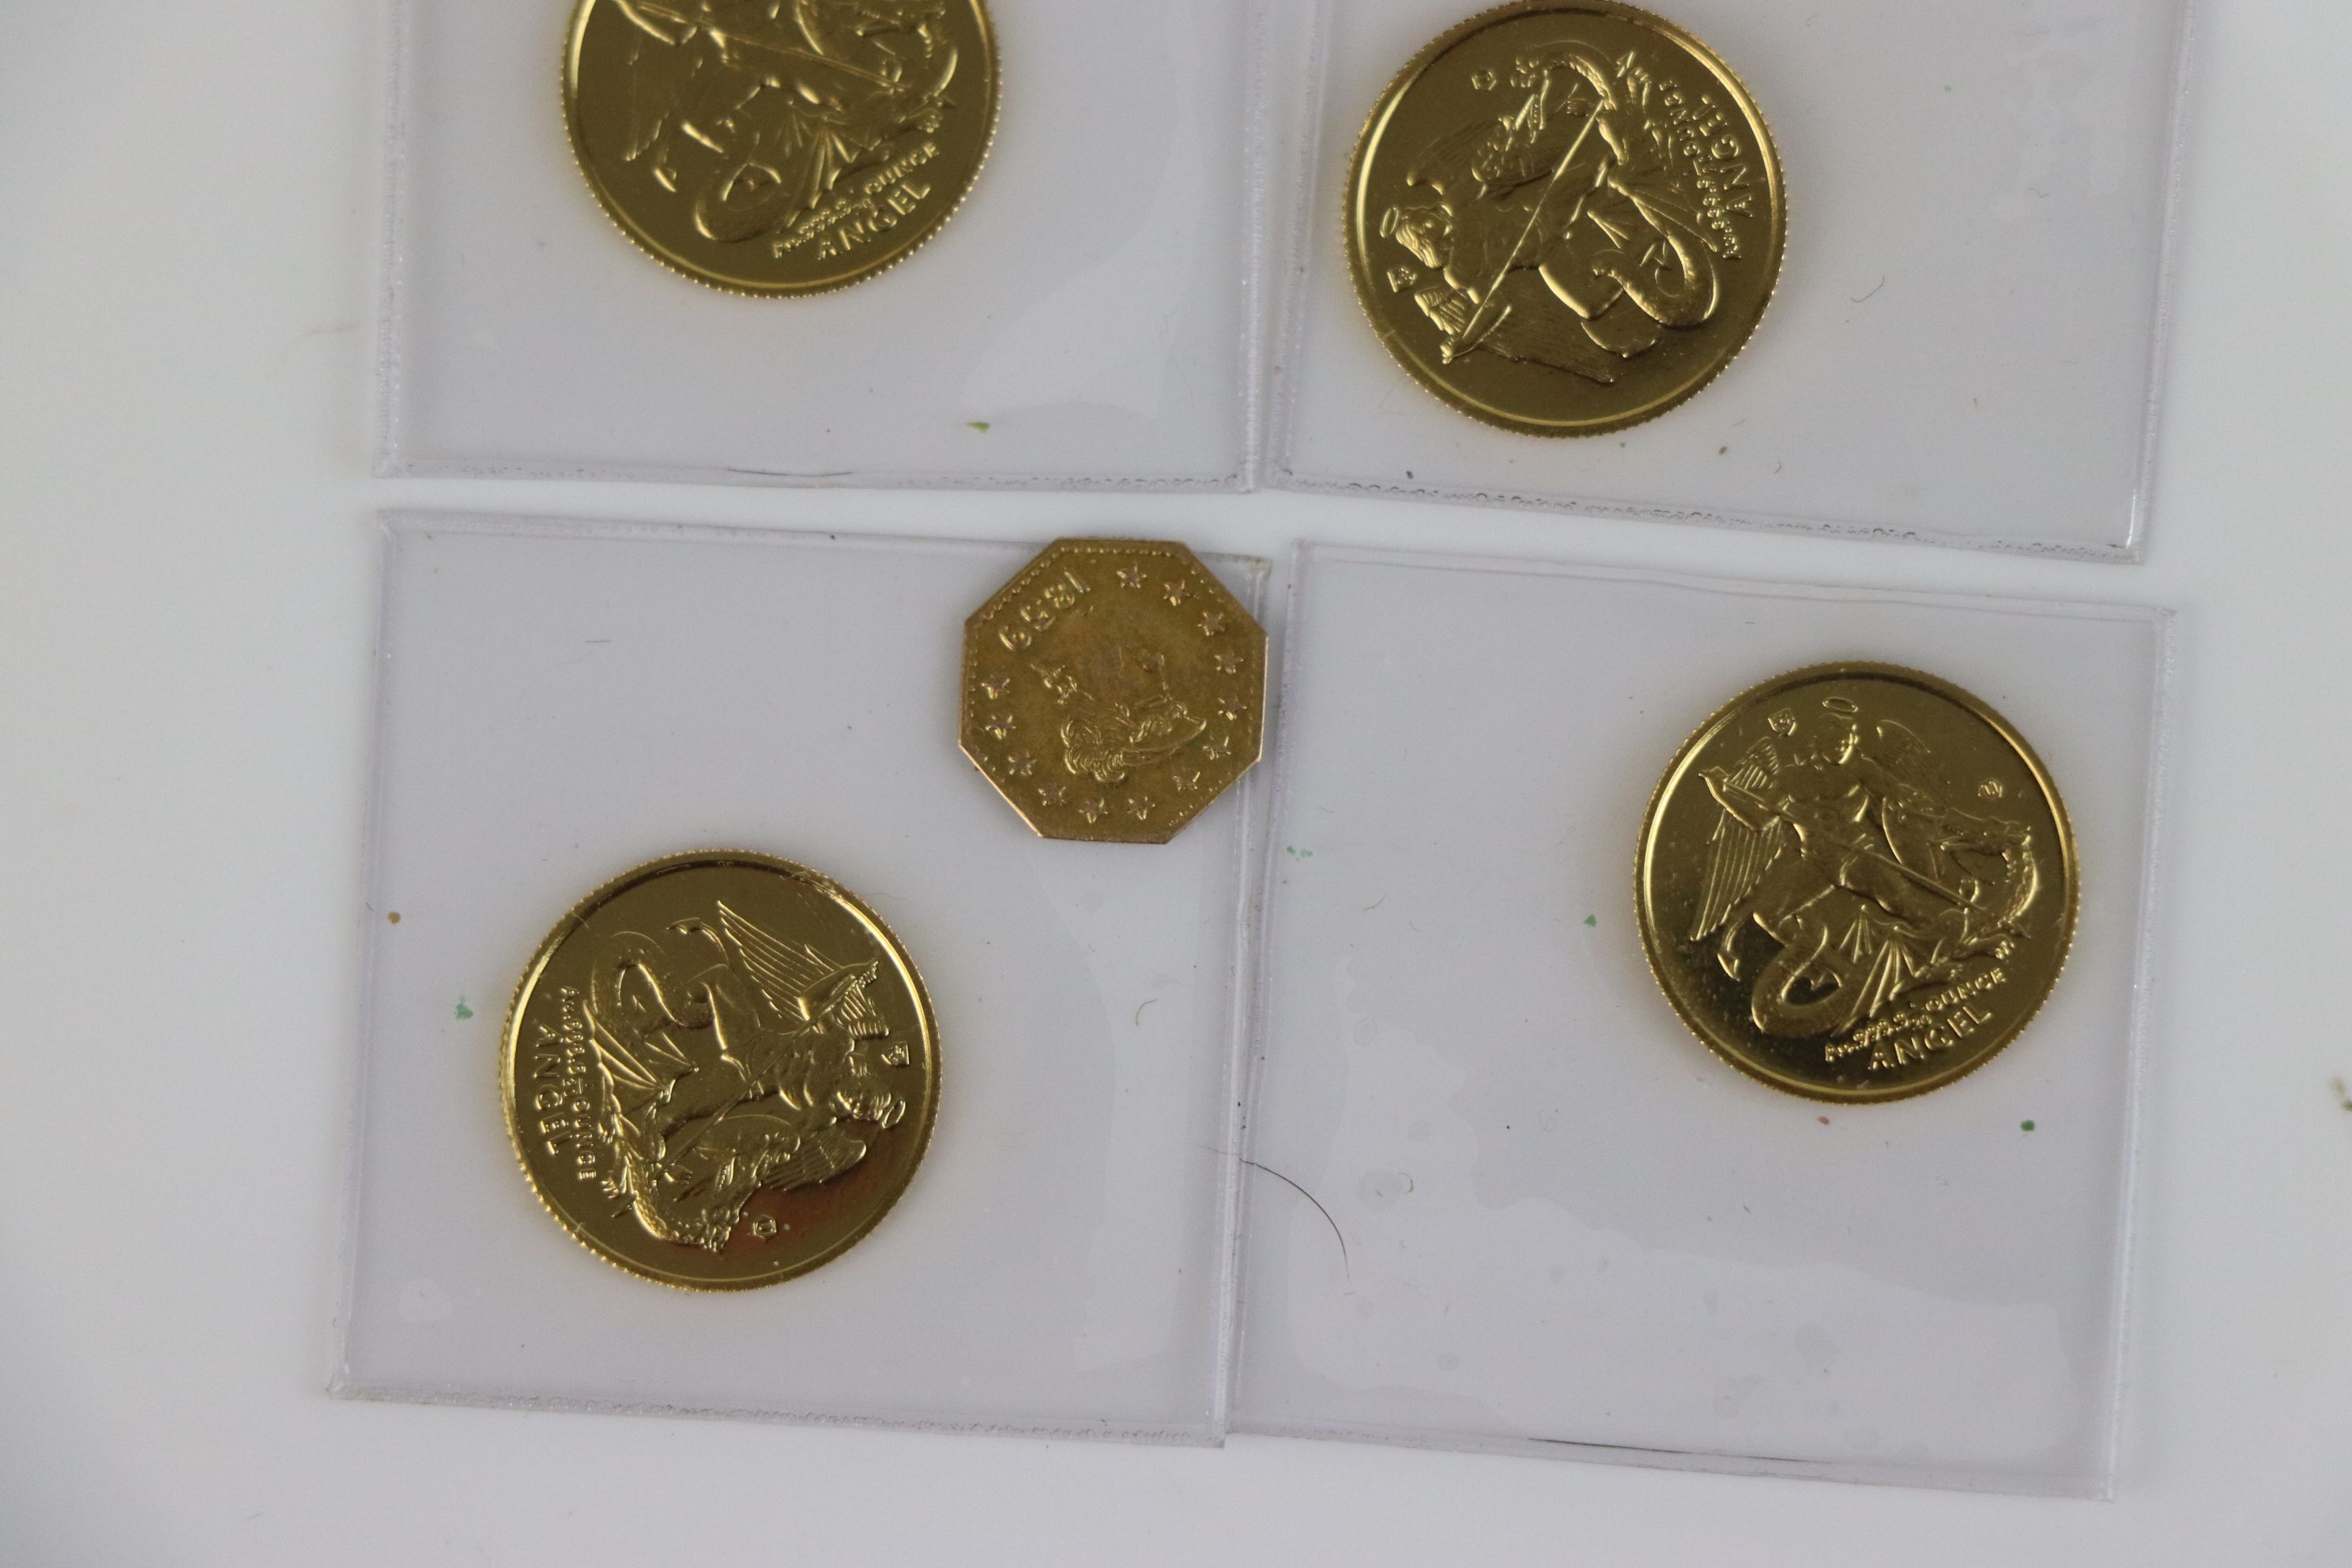 A small collection of British gold coins to include California gold rush 1/4 dollar and an Isle of - Image 4 of 6